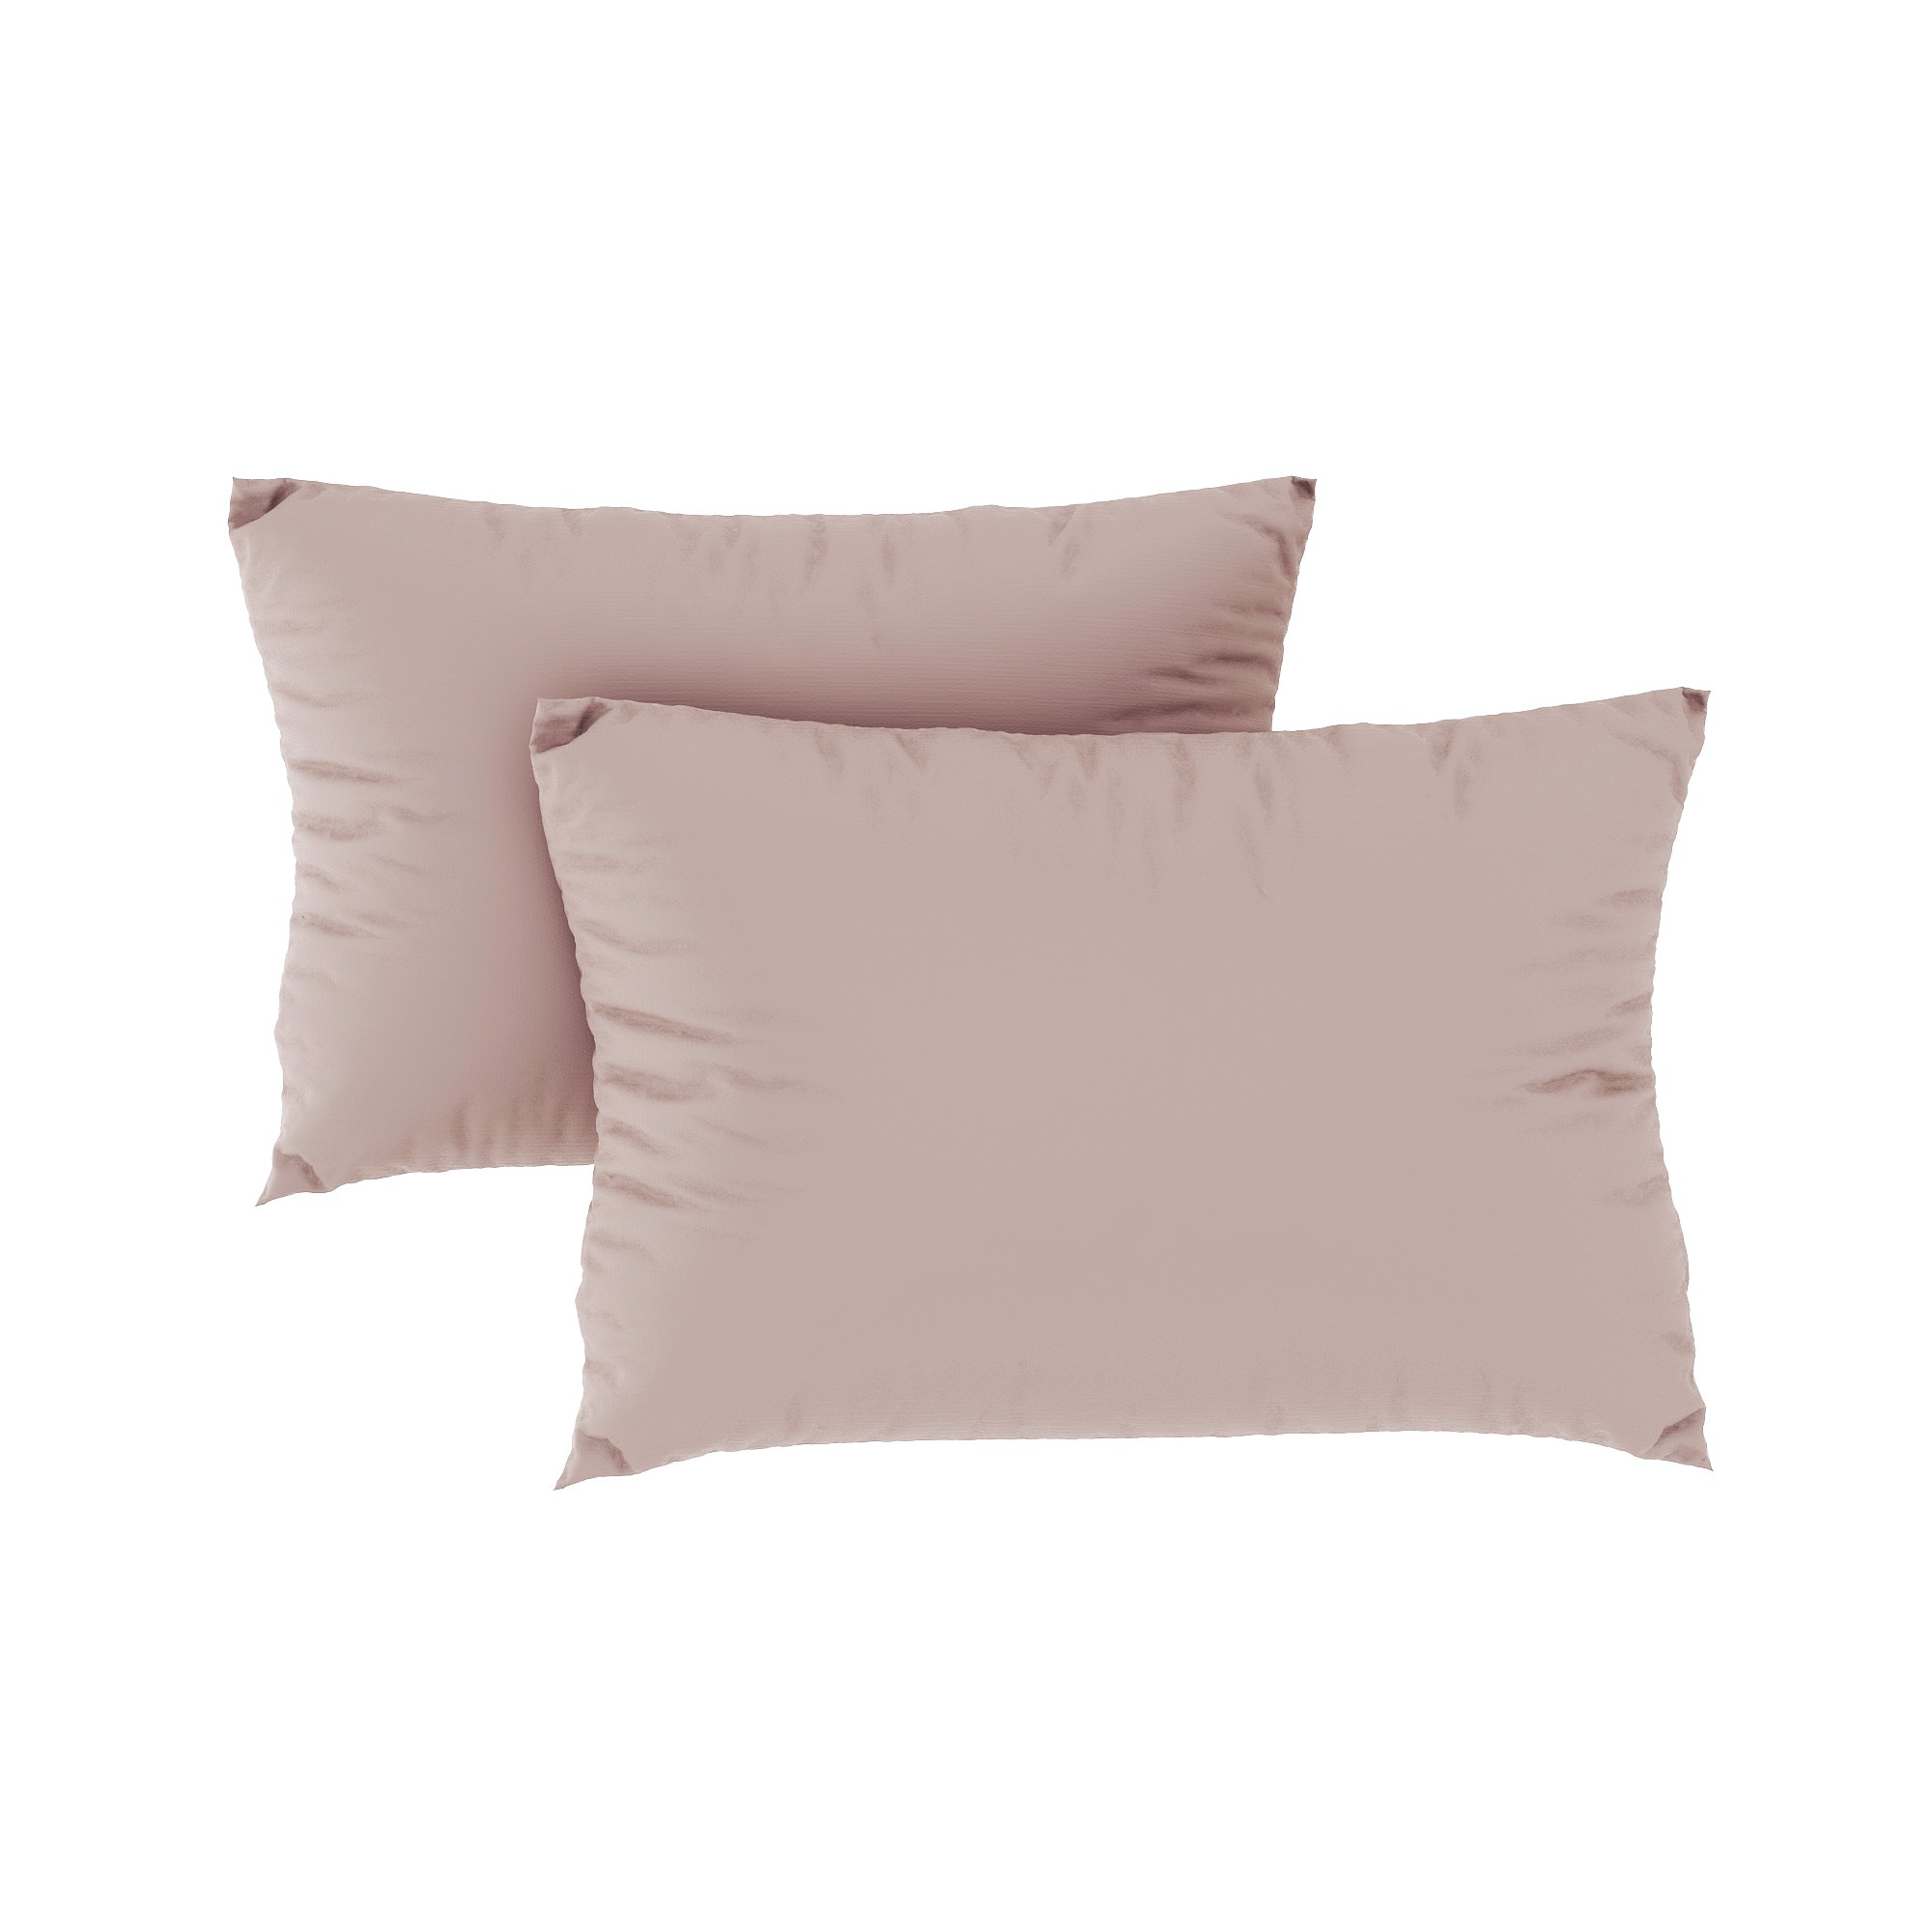 Tencel pillow case 05 Nude pink